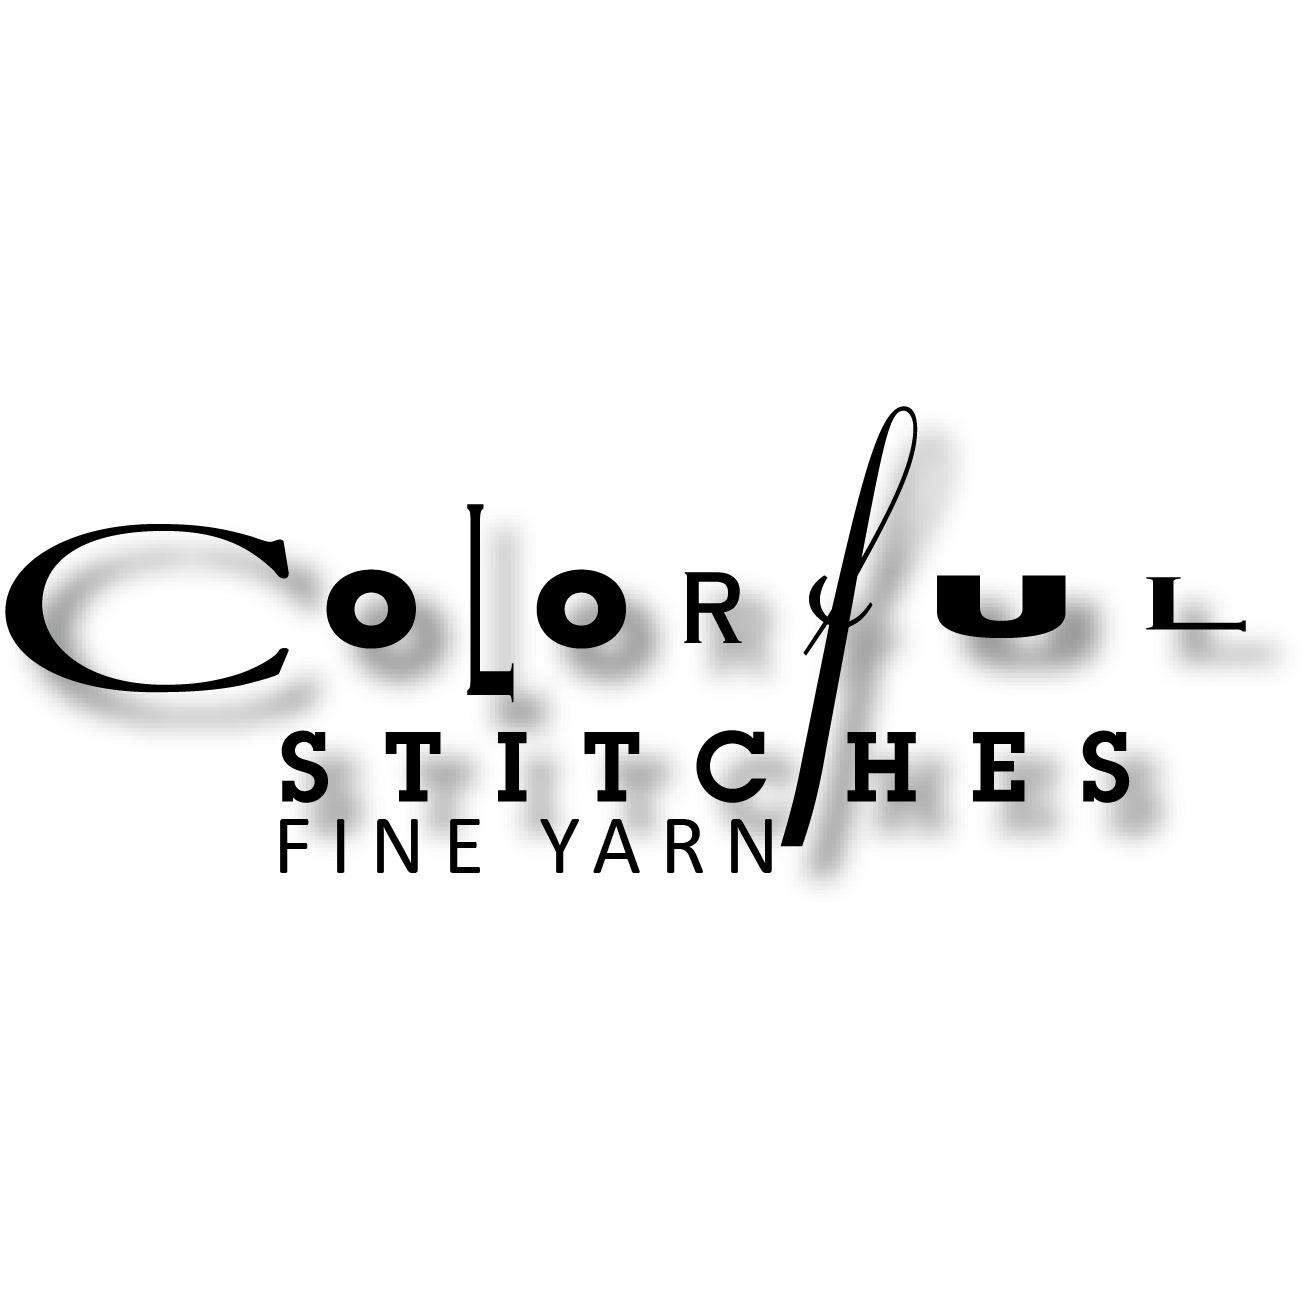 Knitting Groups Near Me : Colorful stitches fine yarn coupons near me in lenox